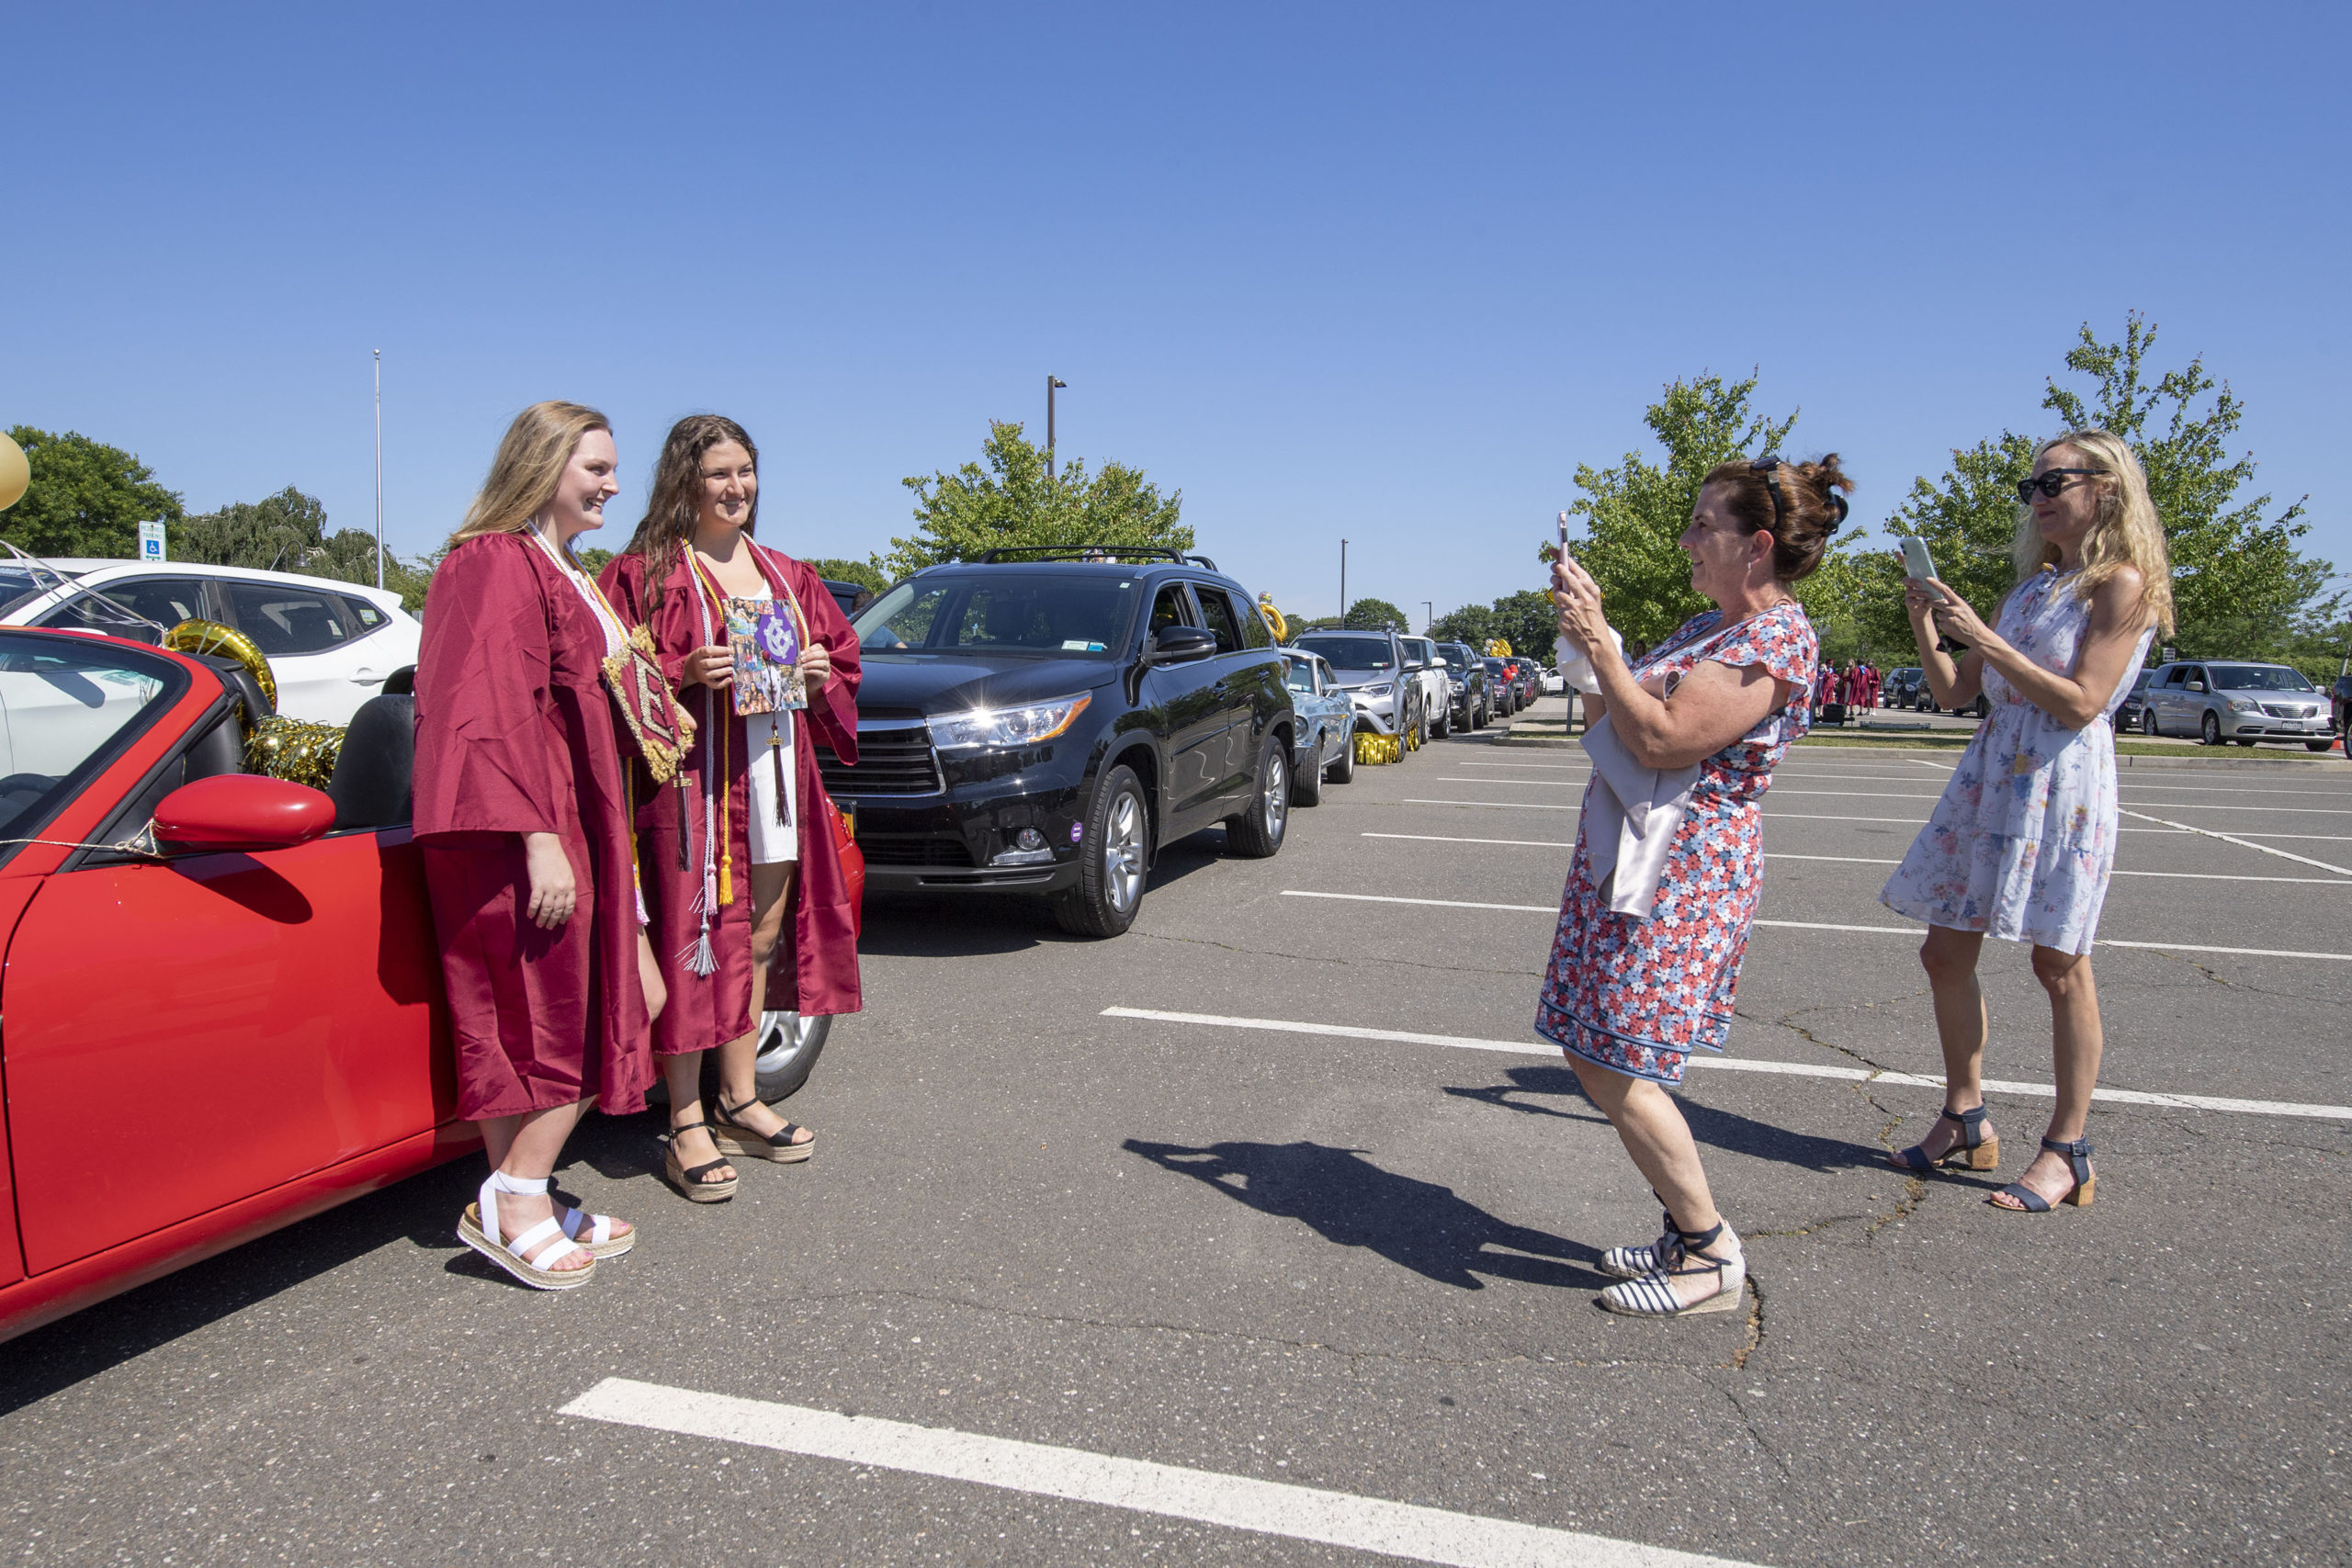 East Hampton High School Seniors Remy Campbell and Kelly Seitz get their photo taken by mom Anne Marie Seitz as they get ready to participate in the 2020 graduation ceremony at the East Hampton High School on Friday.